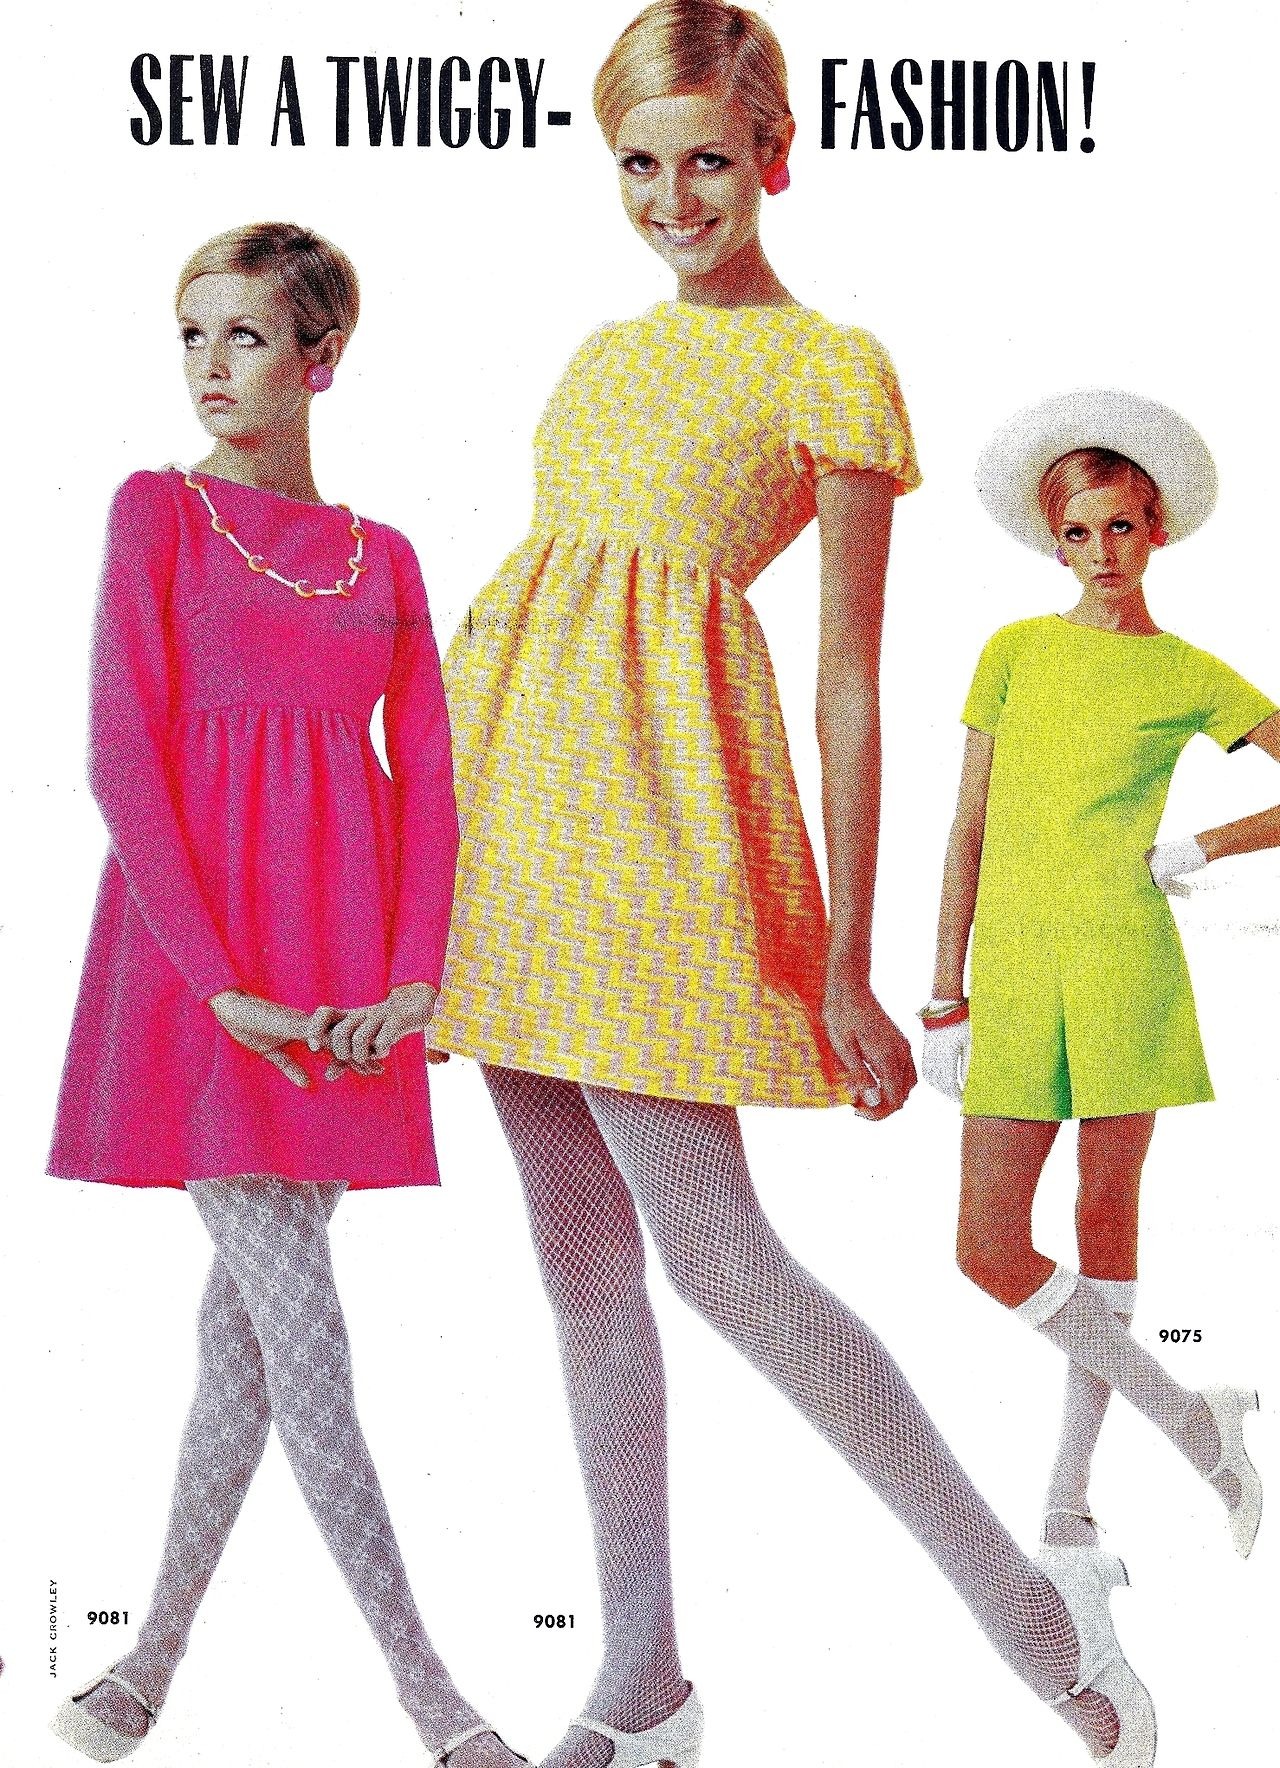 How people dress in the 60s fashion